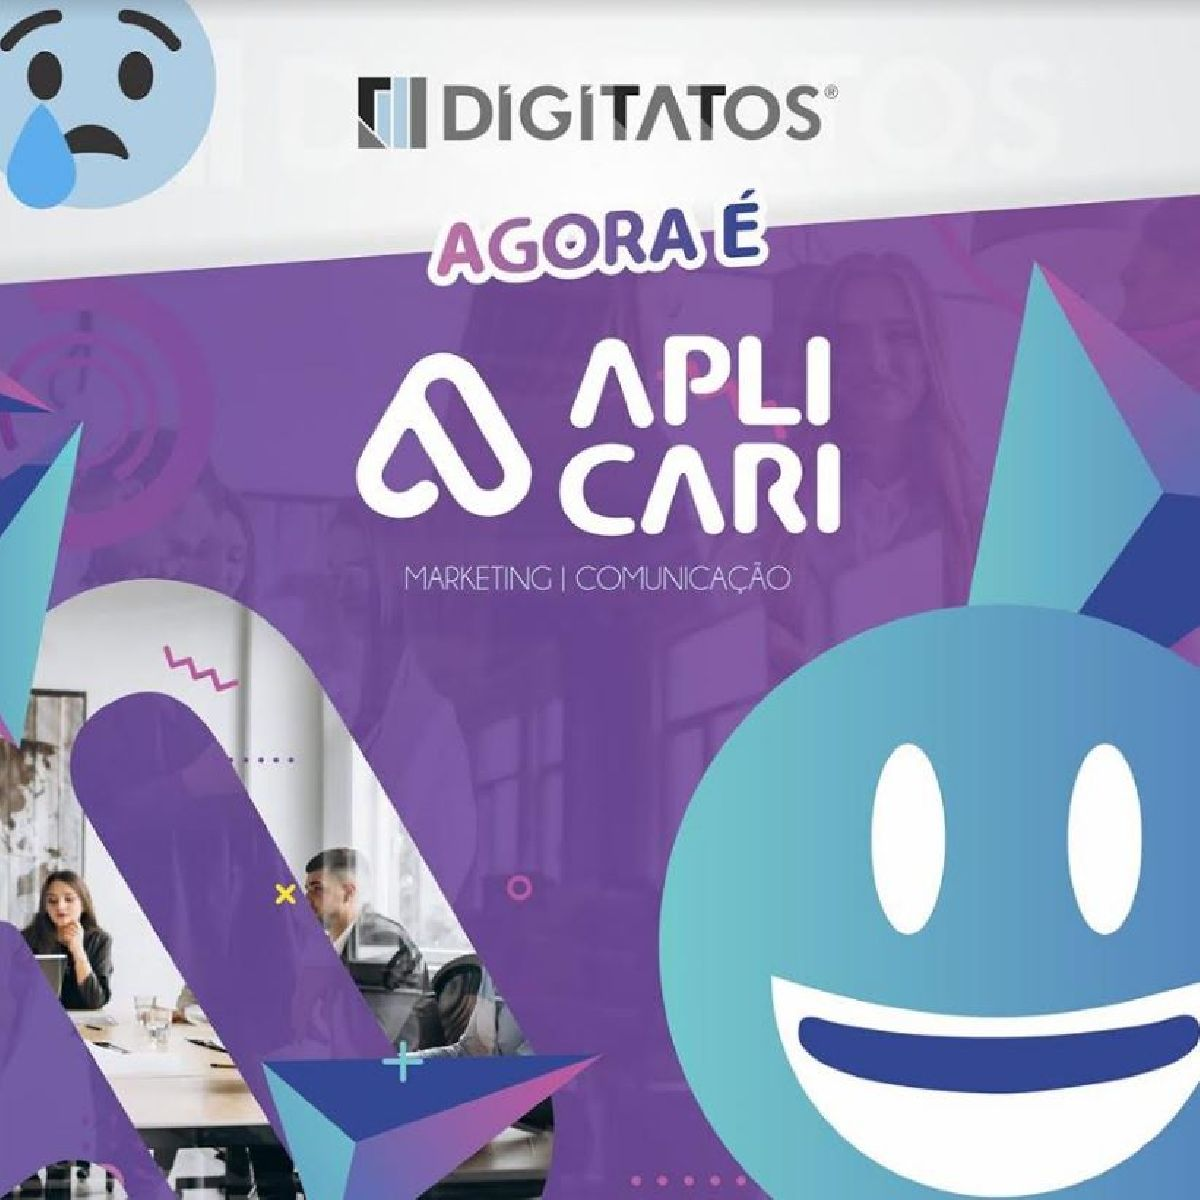 DIGITATOS MARKETING DIGITAL, AGORA É APLICARI